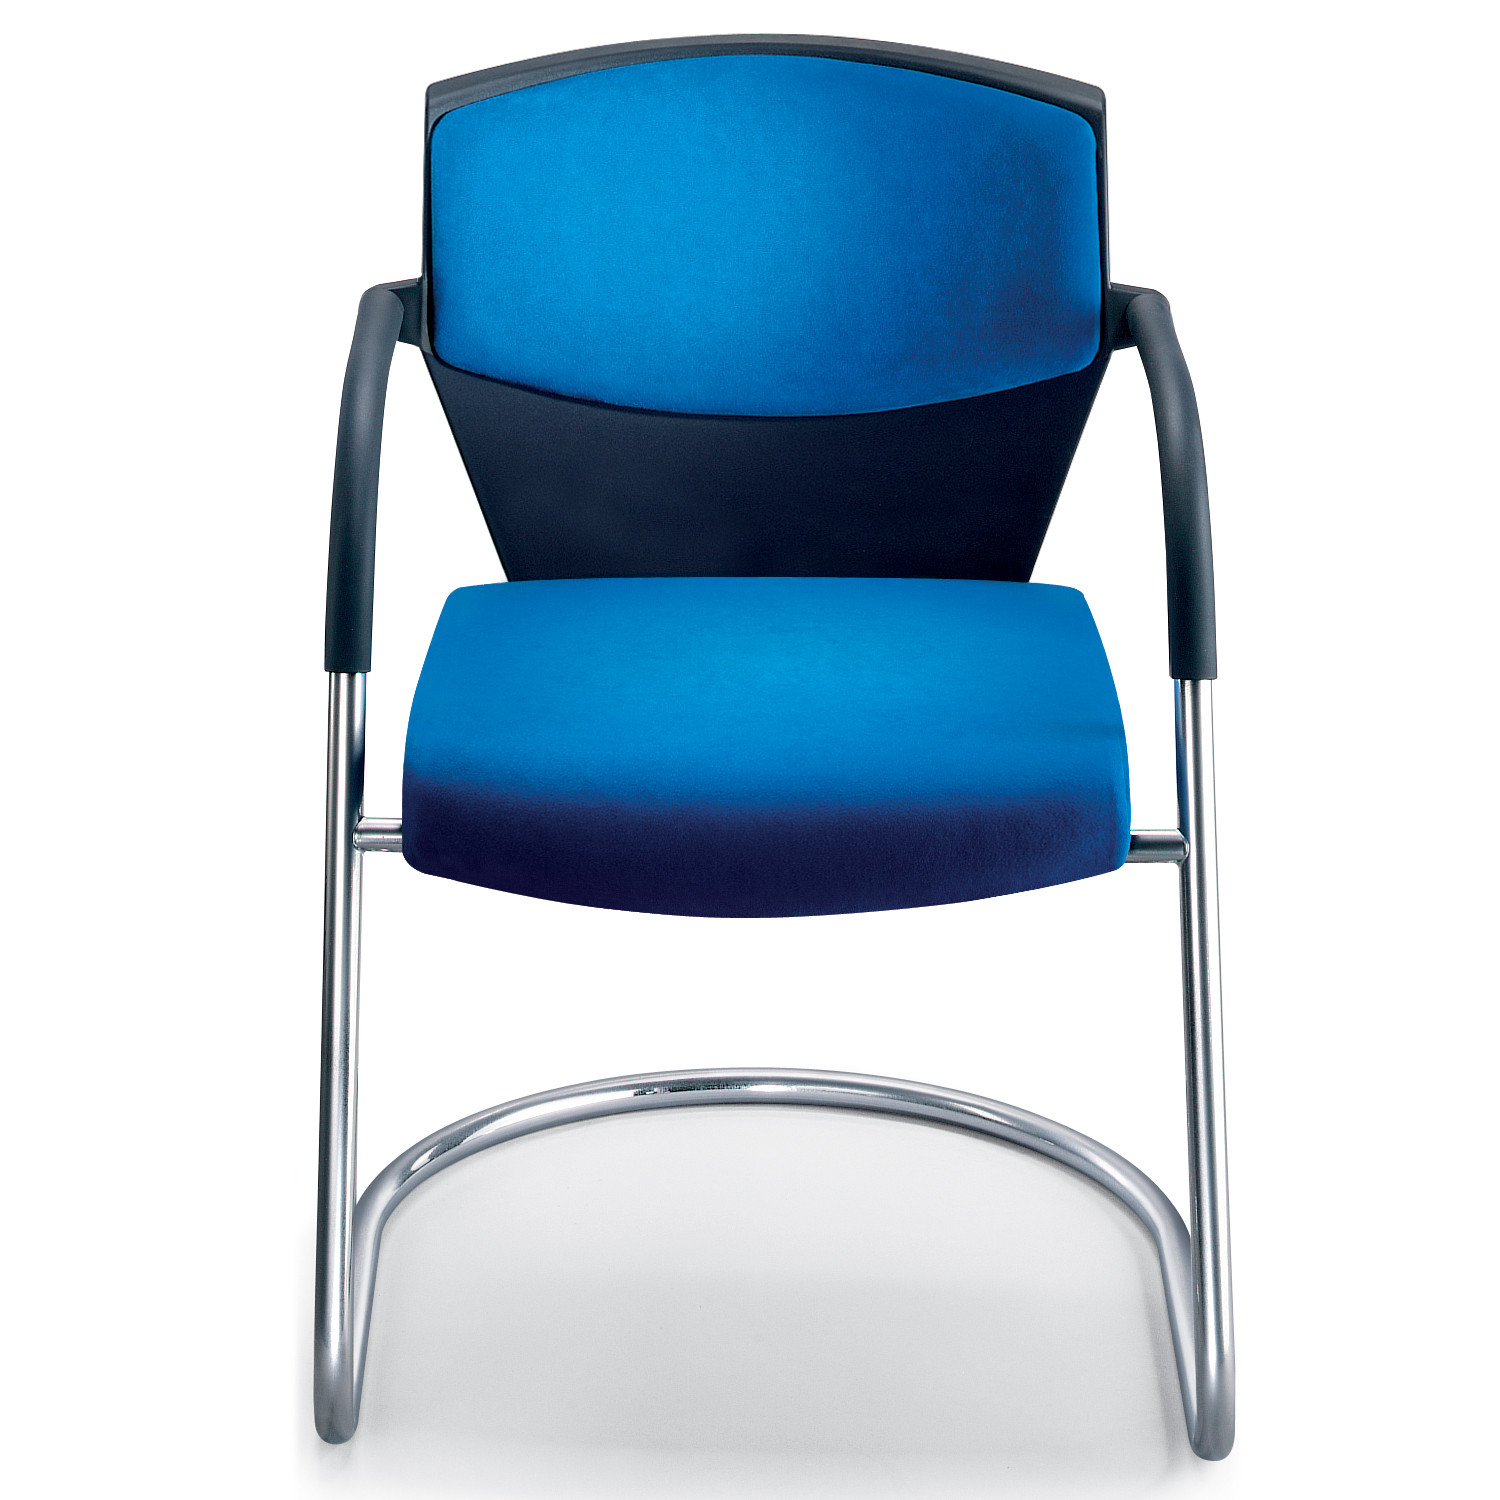 Cosmos Office Chair ...  sc 1 st  Apres Furniture & Cosmos Visitor Chairs | Comfortable Conference Seating | Après Furniture